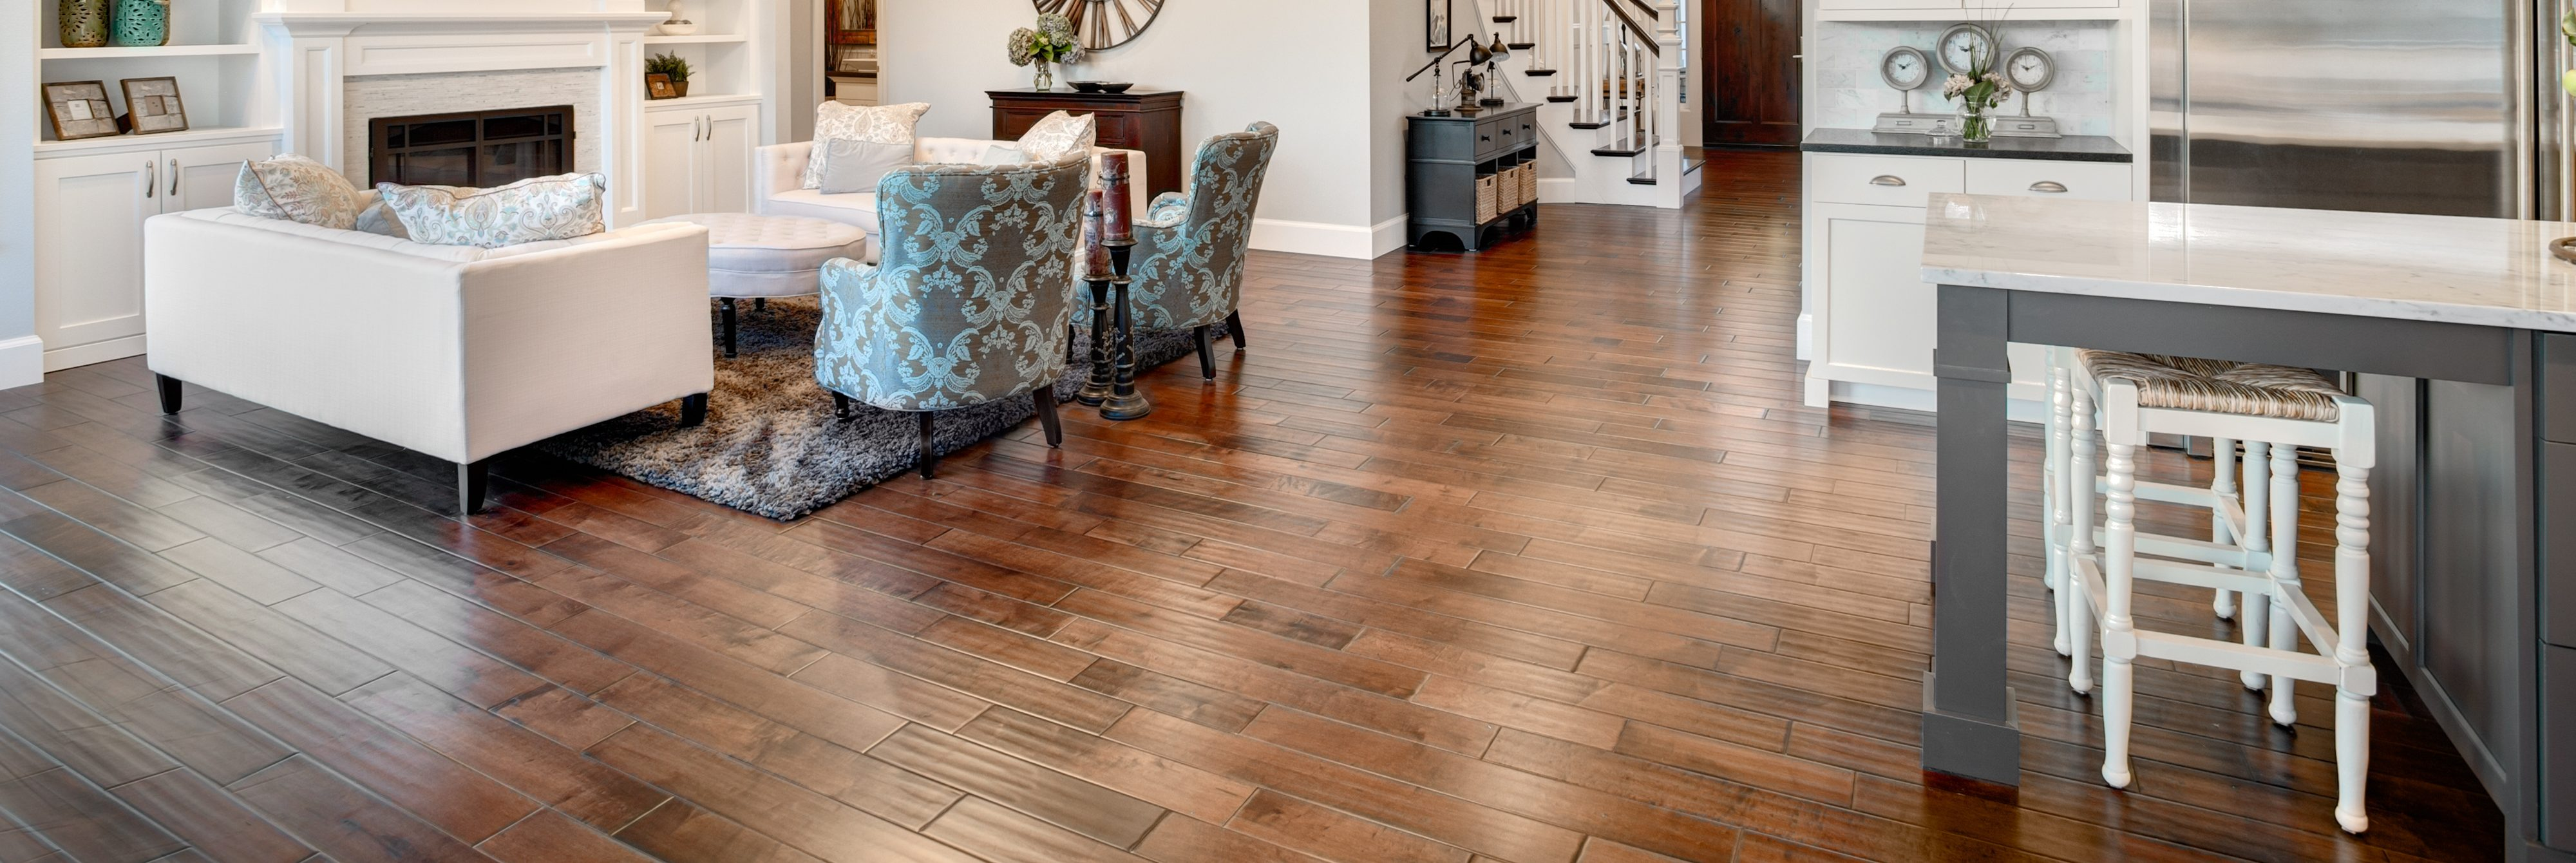 bamboo advanced floor natural flooring installations strand gallery tanoa woven services